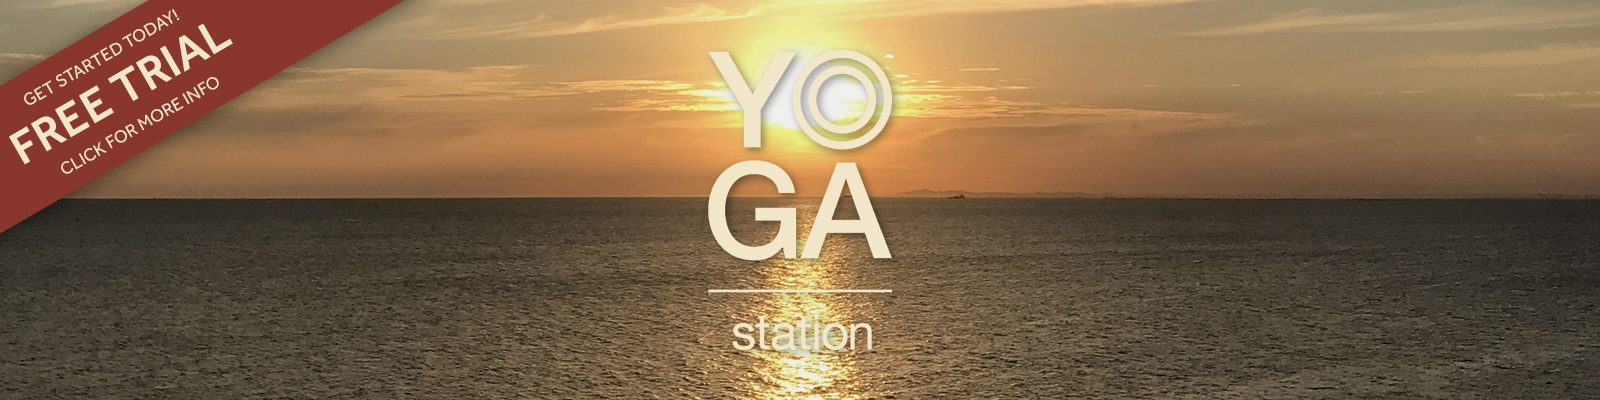 yoga-station-home-sunset-gv